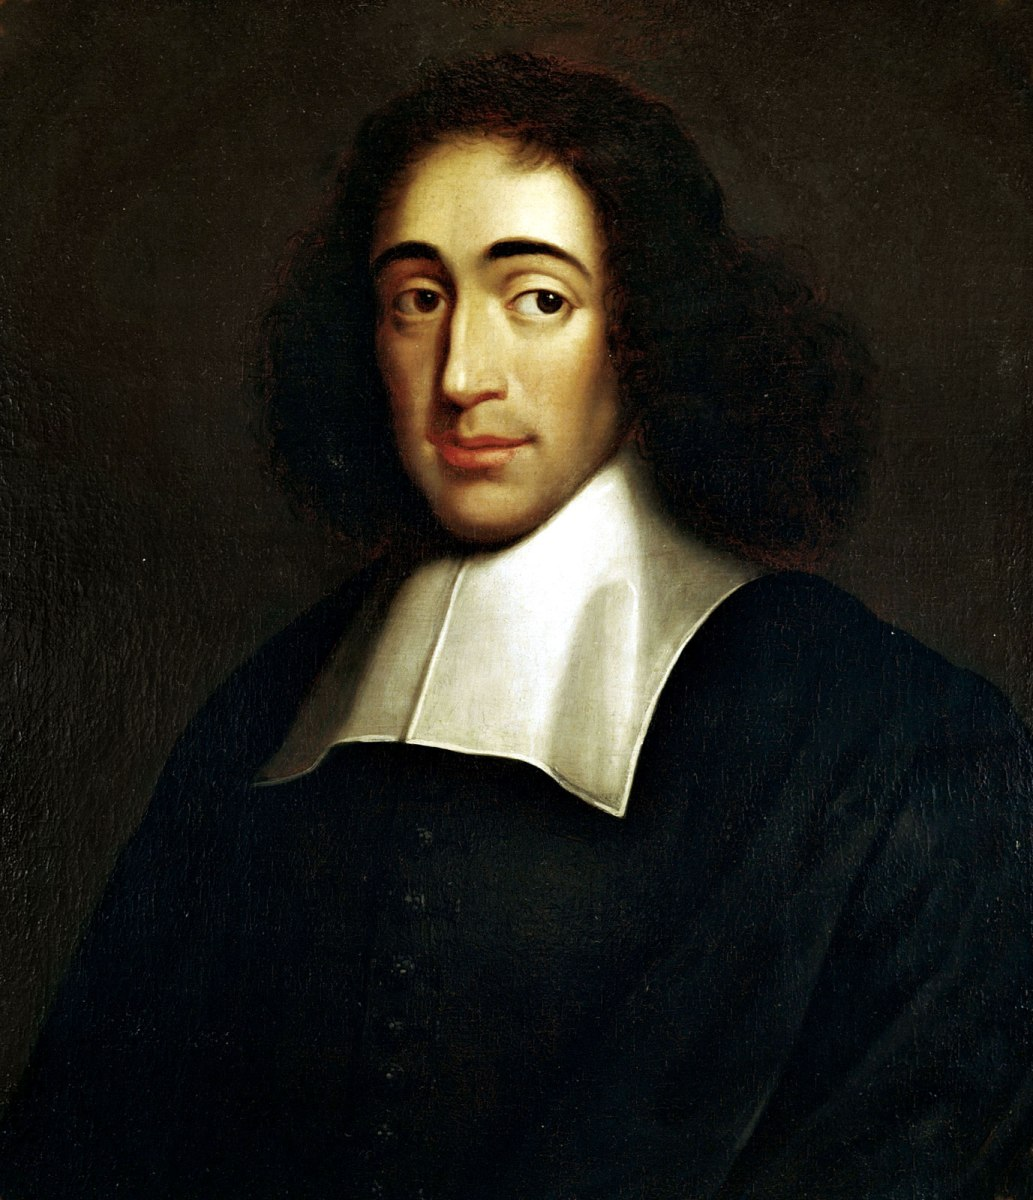 Baruch Spinoza - The Prince of Philosophers